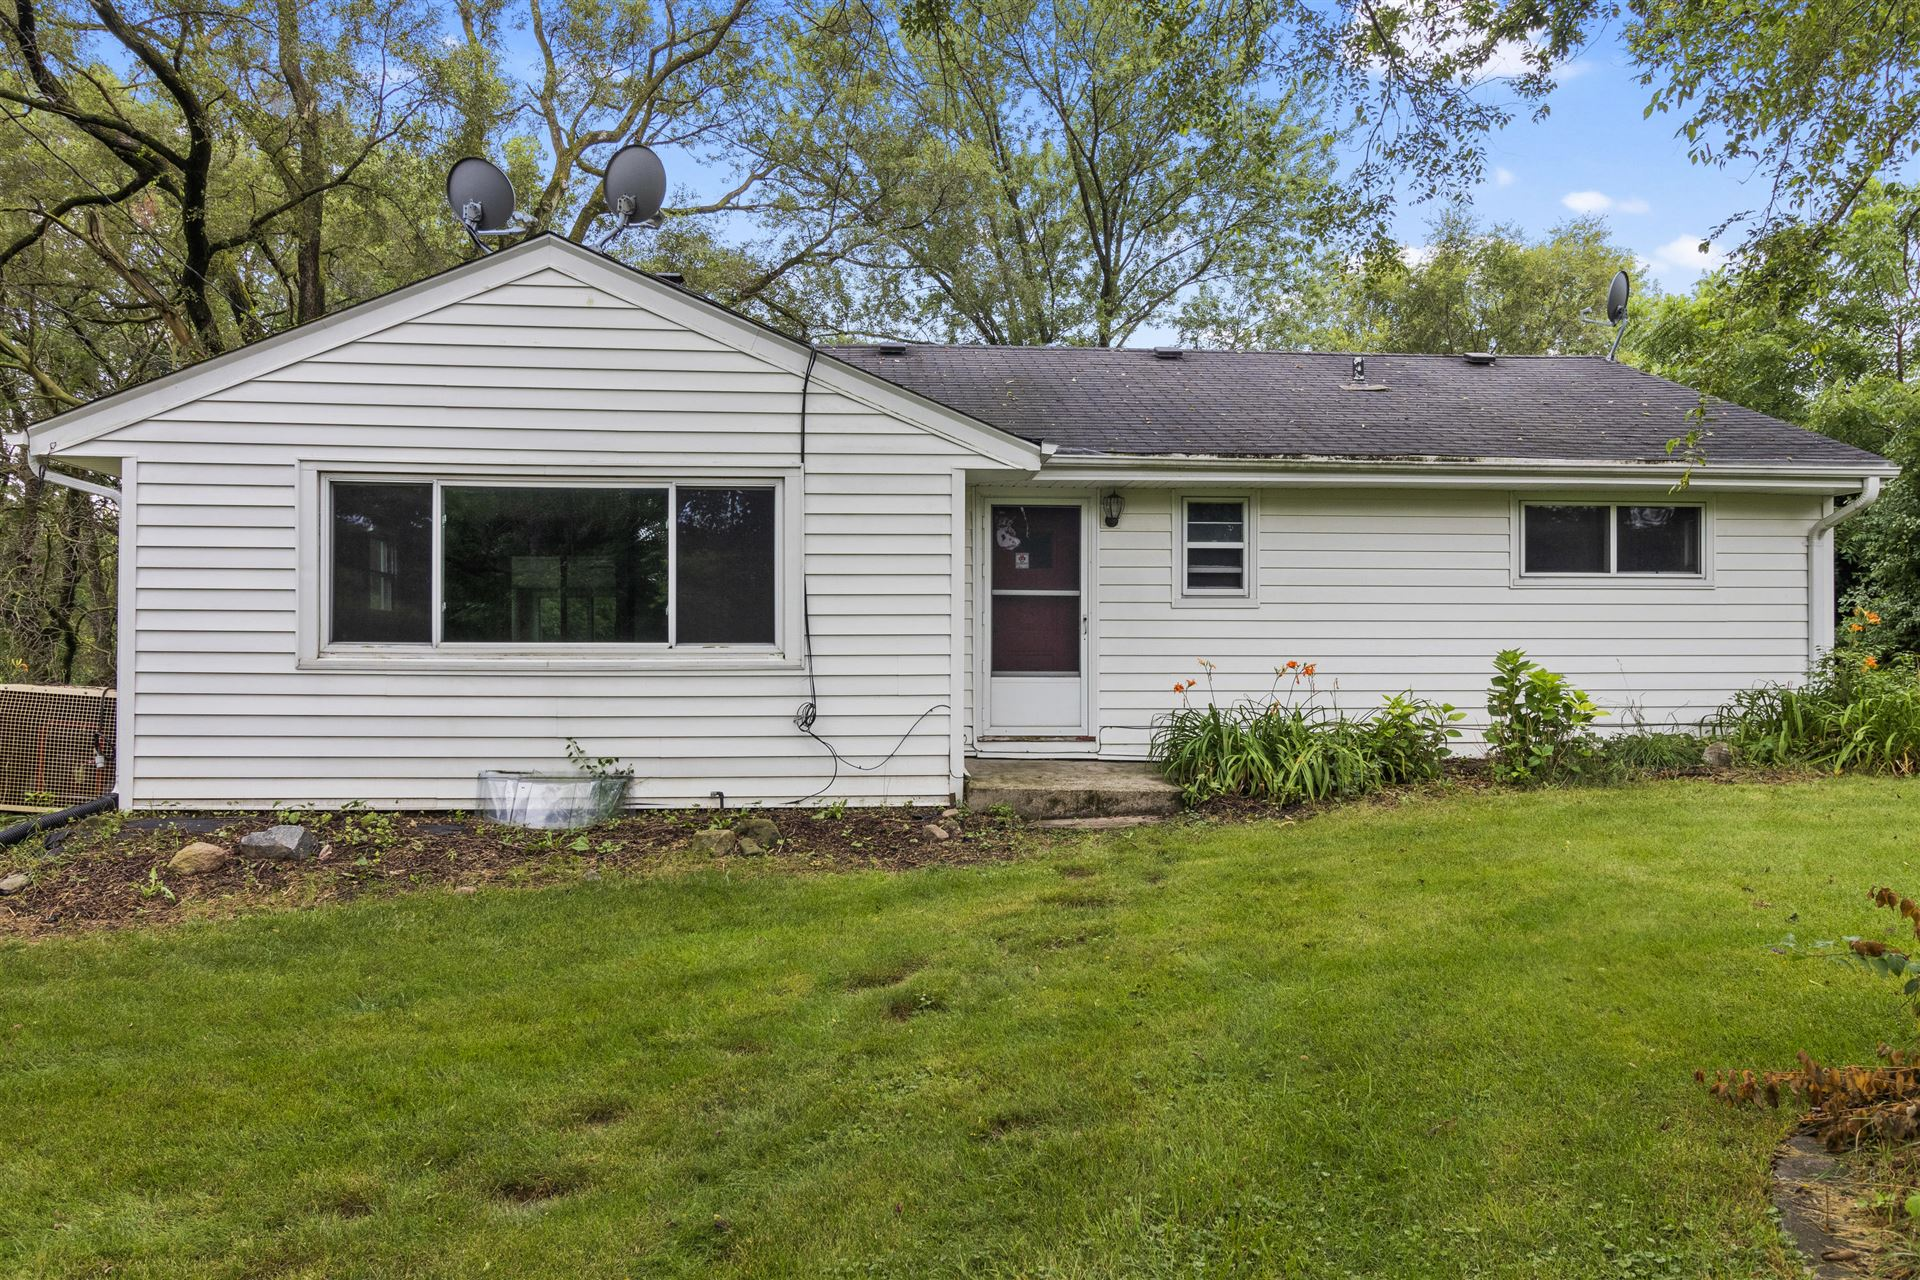 3602 W Missouri Ave, Franklin, WI 53132 - #: 1702617